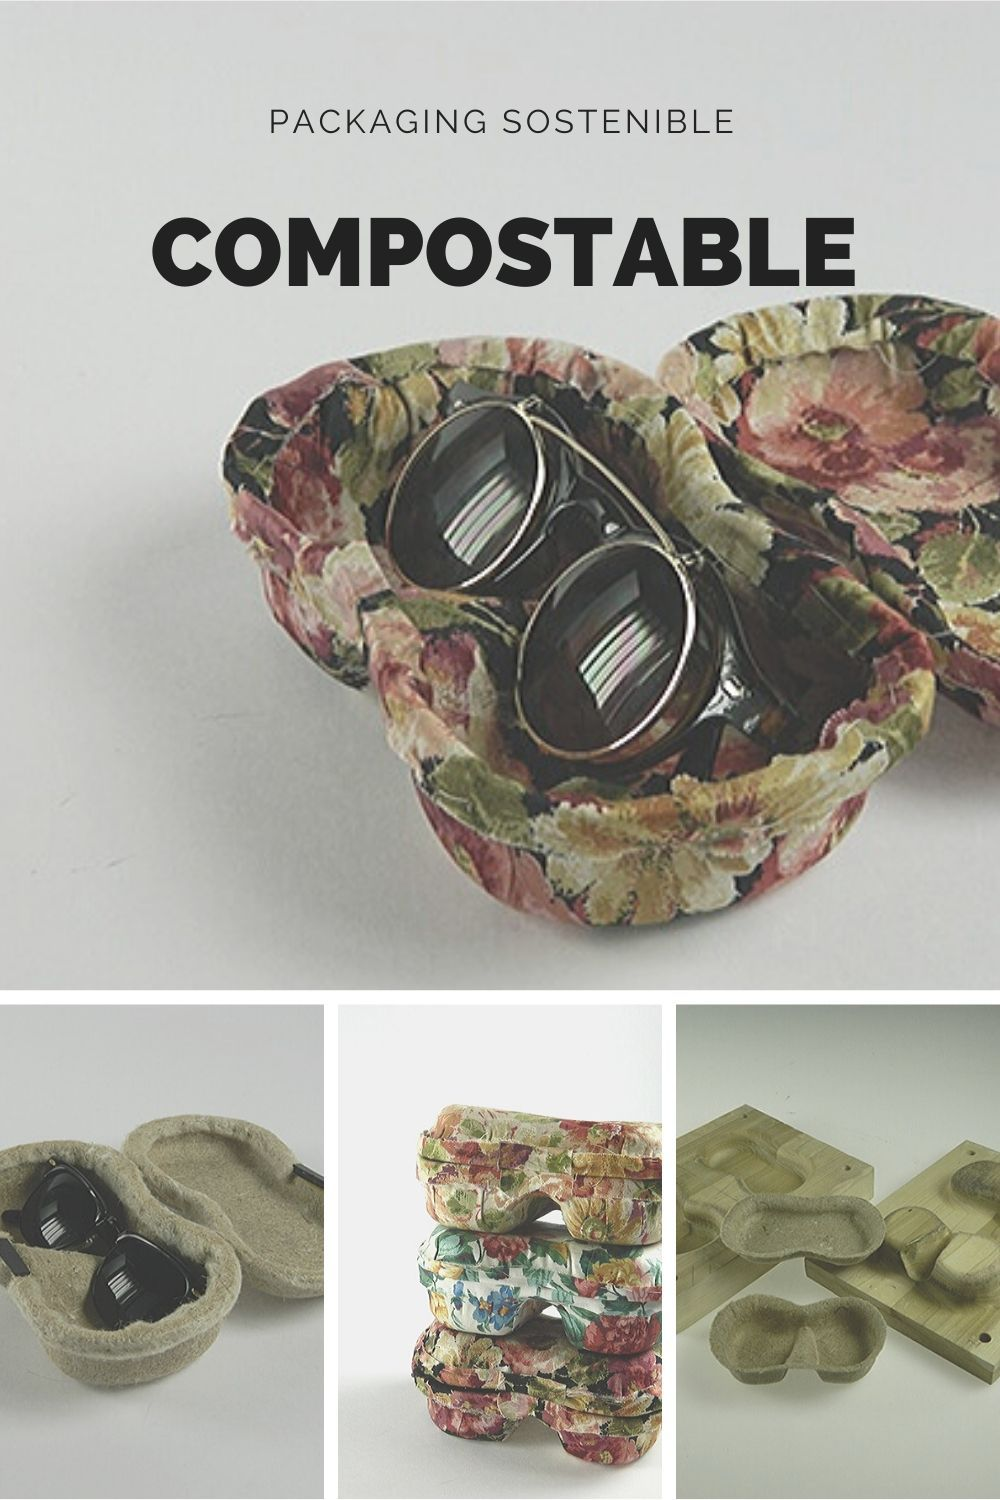 packaging hecho con materiales compostables